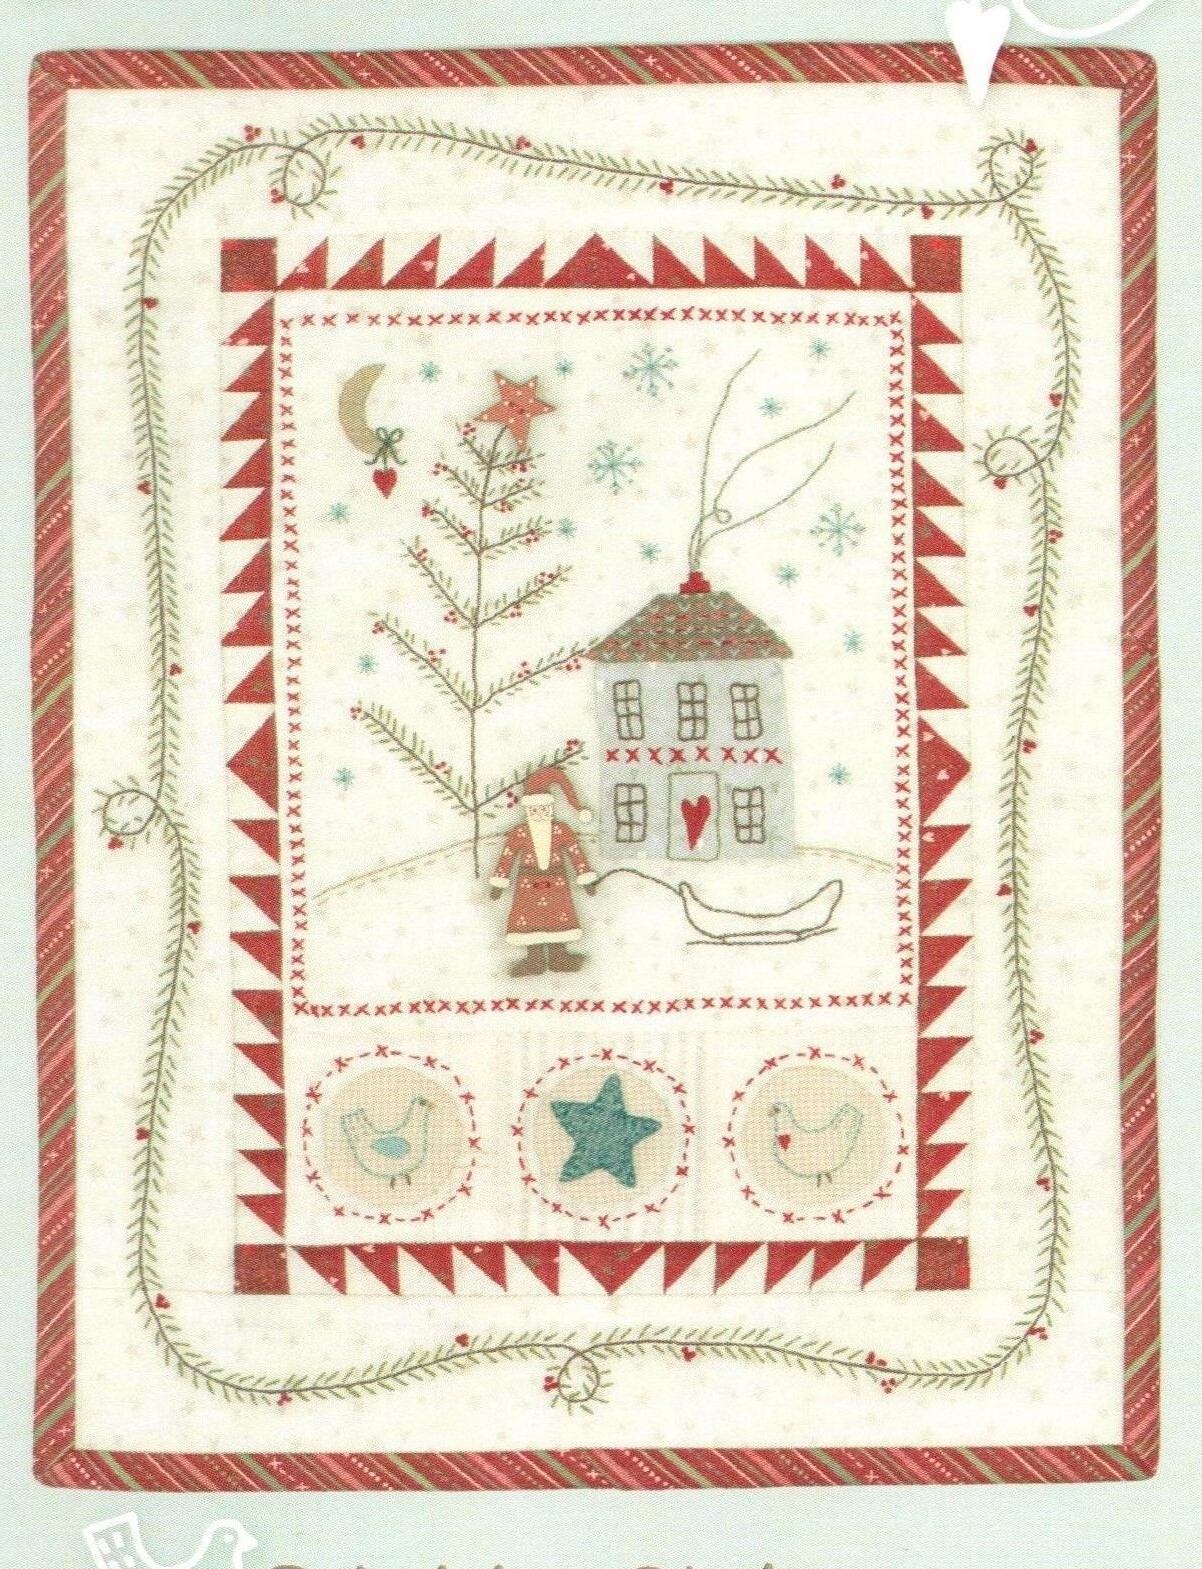 Christmas Embroidery Patterns Primitive Christmas Quilt And Embroidery Pattern With Hand Painted Jolly Santa Button Pack